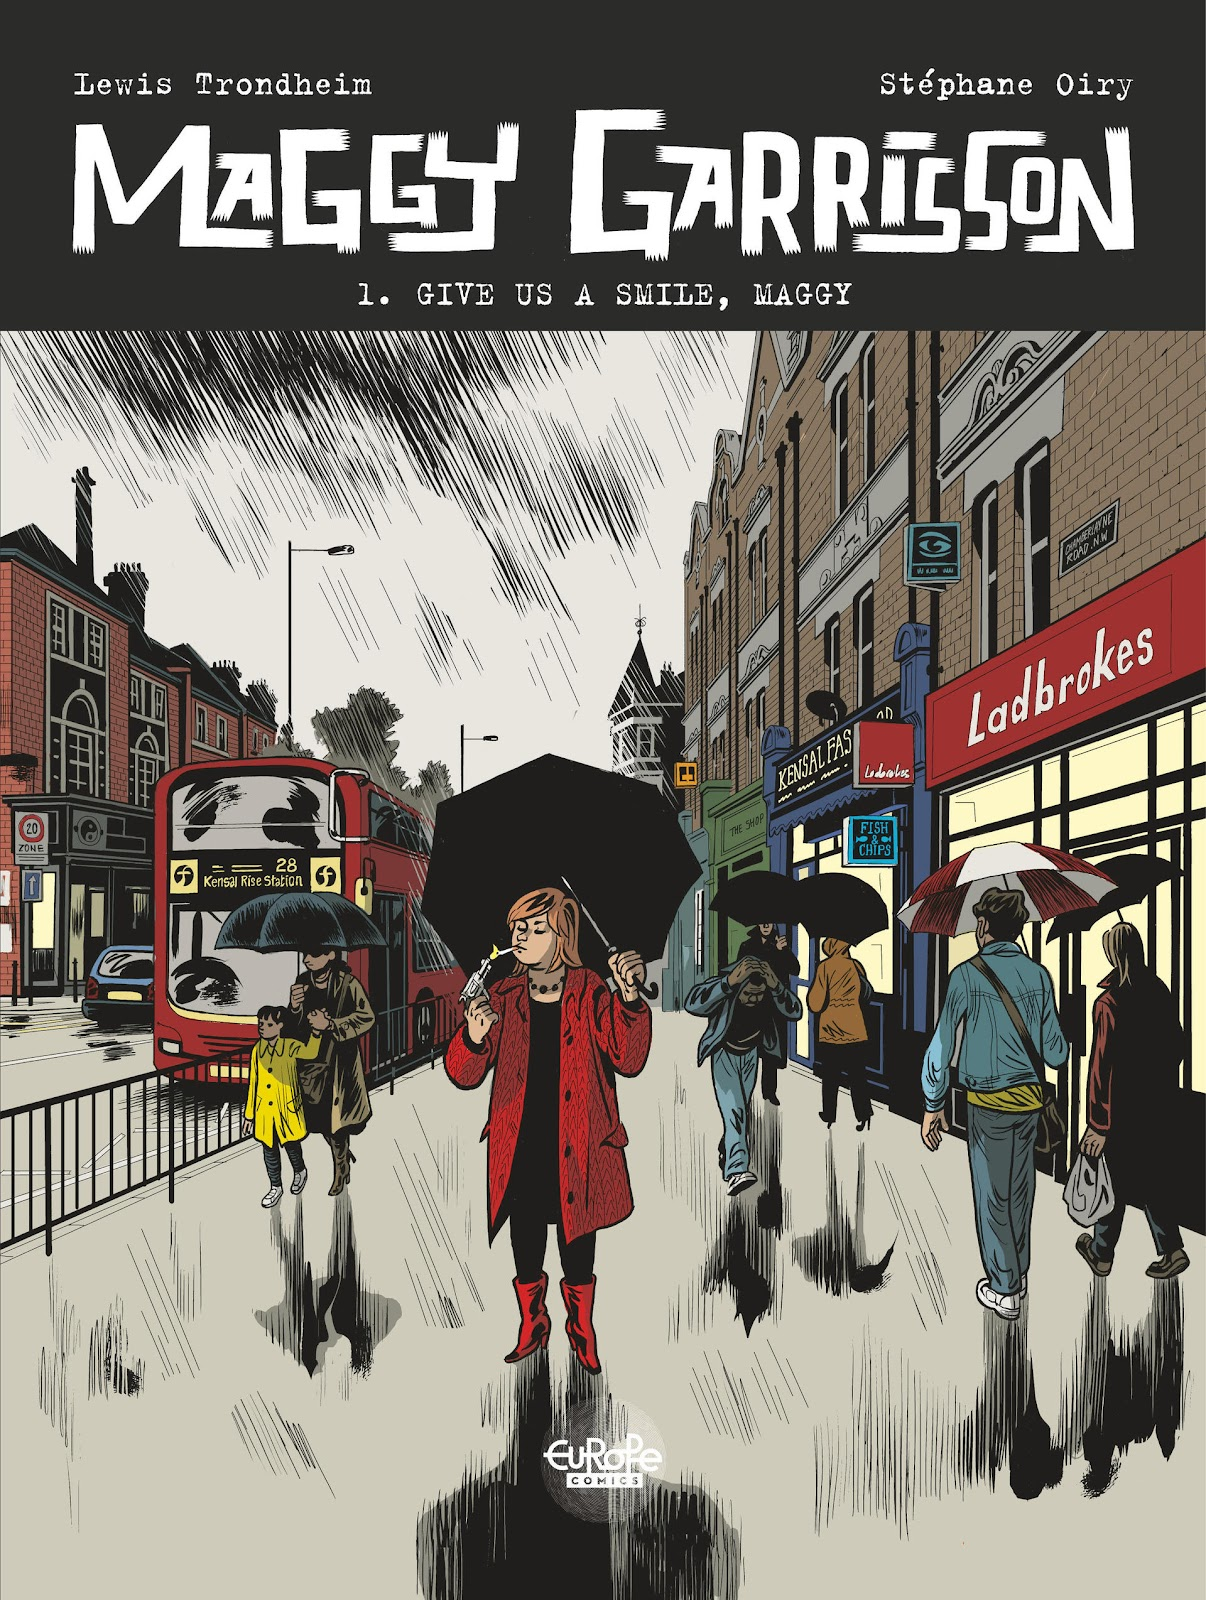 Read online Maggy Garrisson comic -  Issue #1 - 1